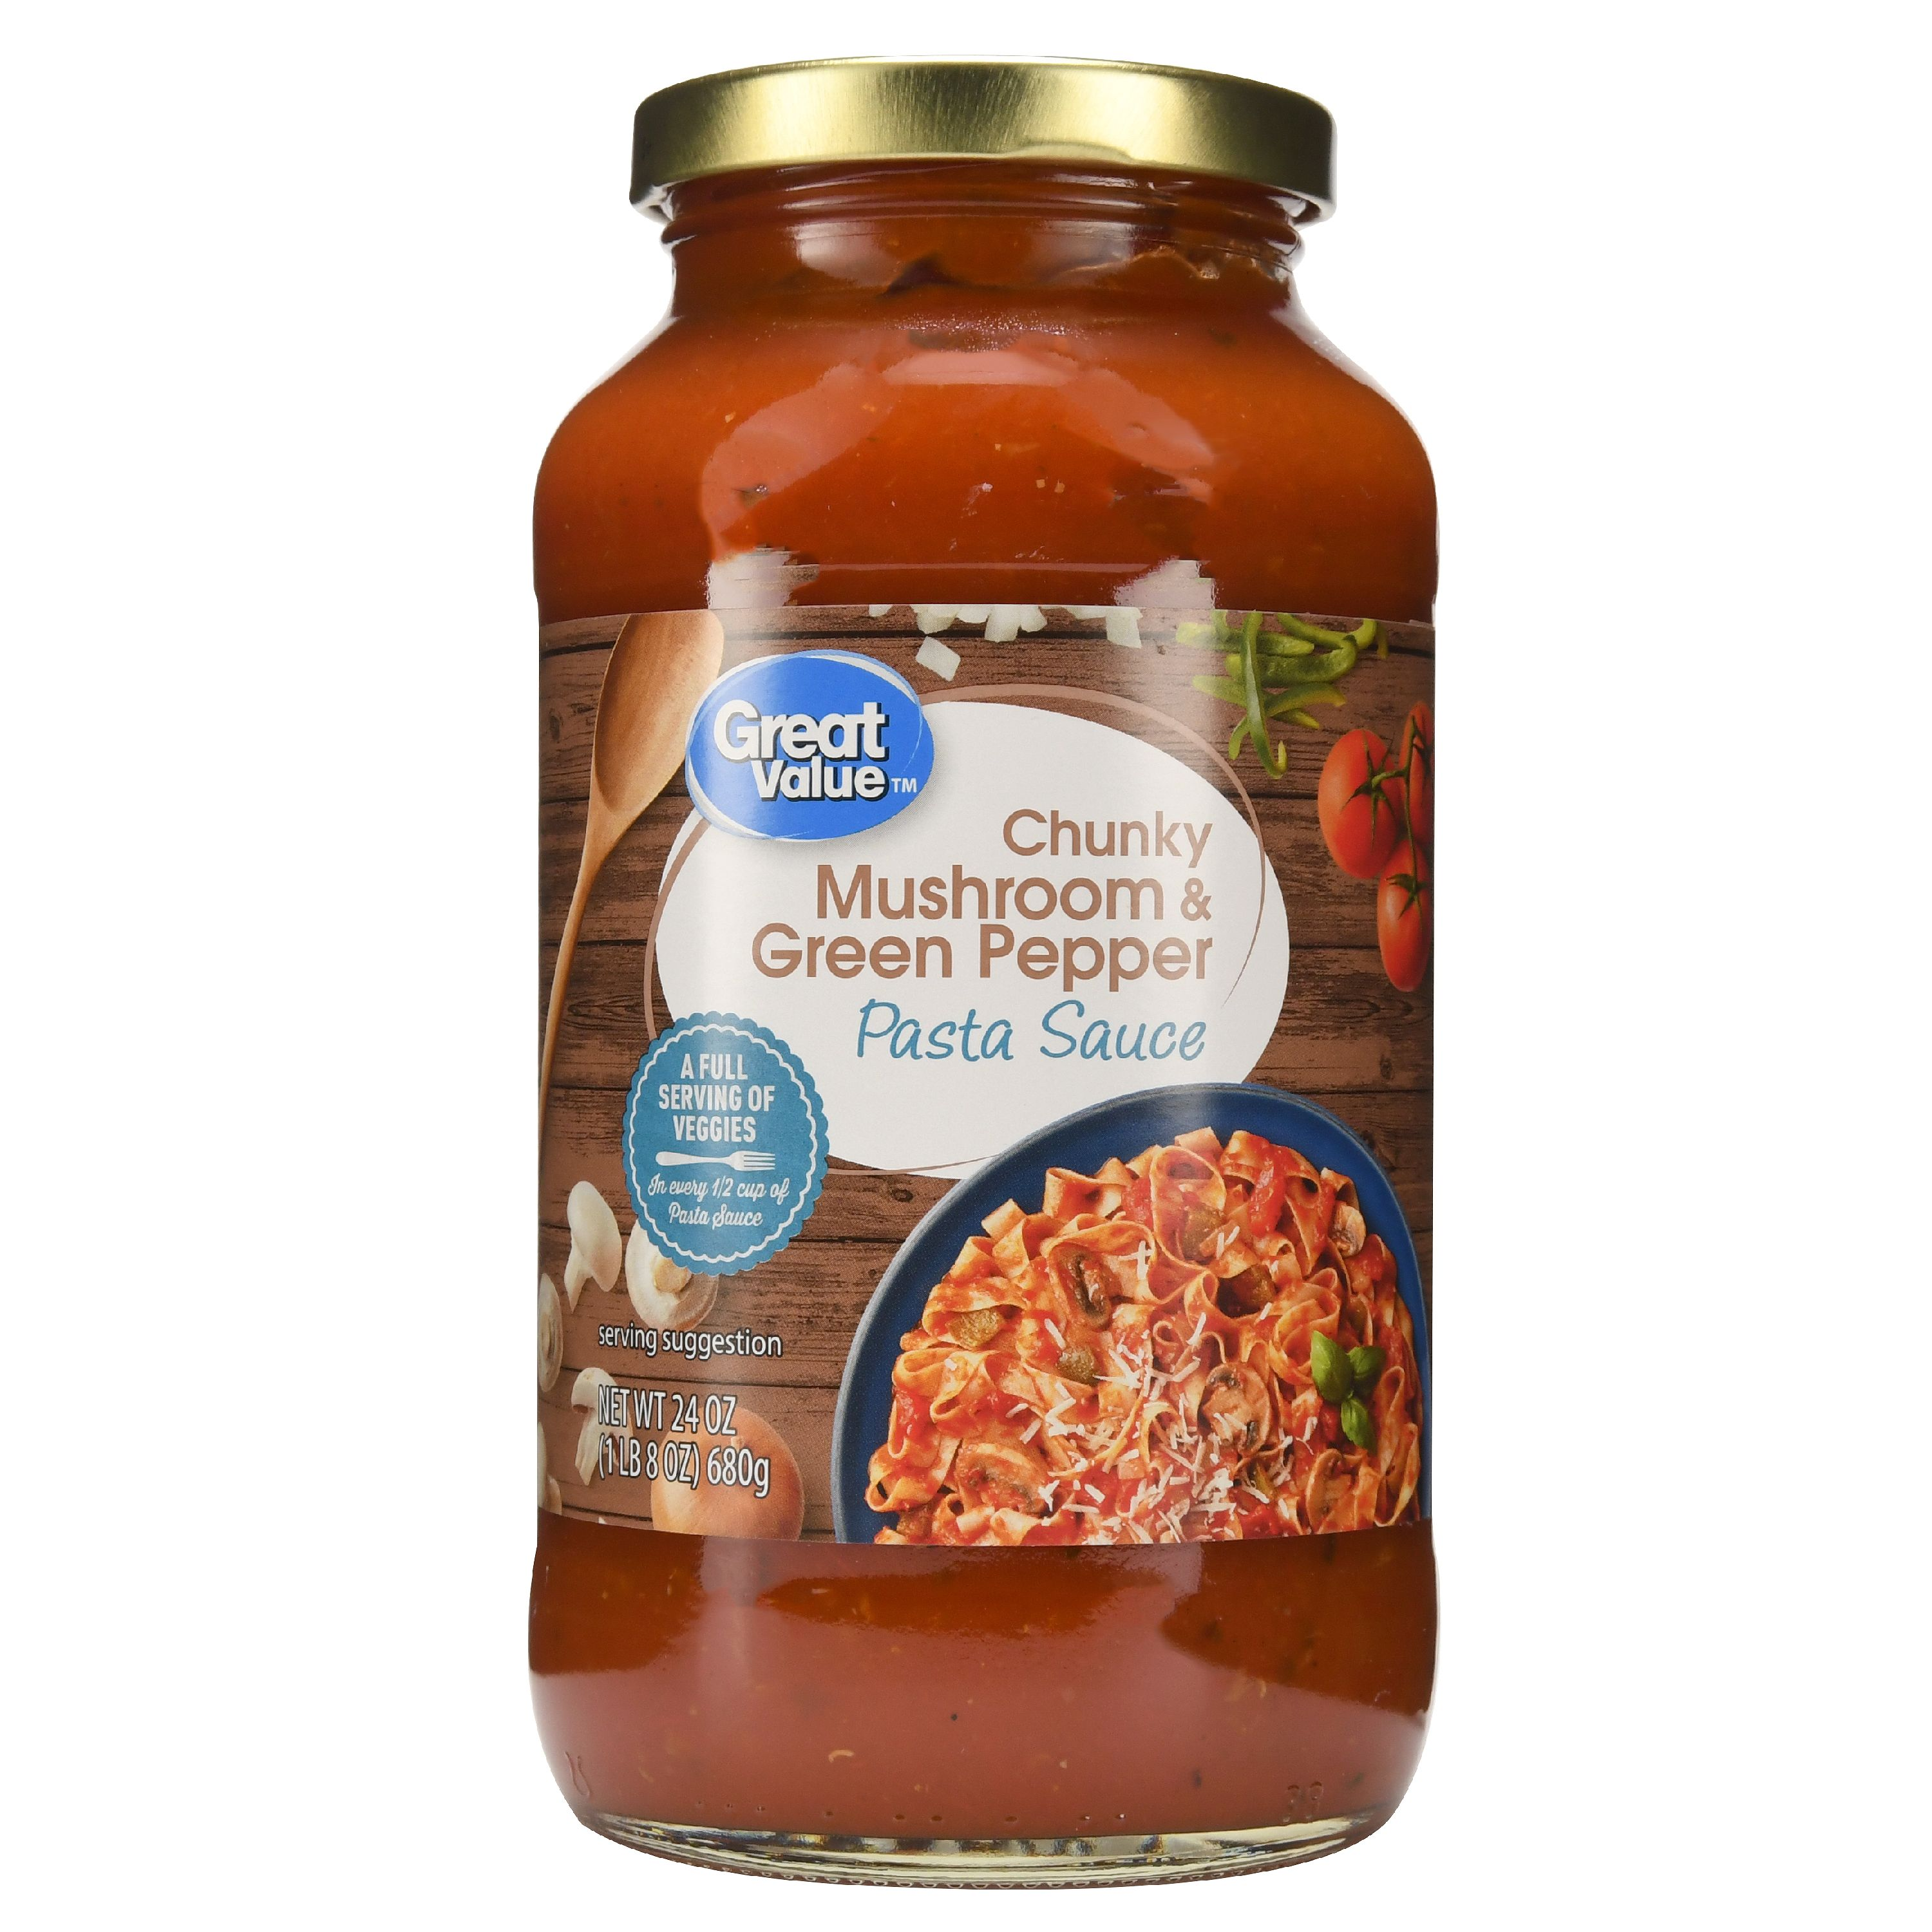 (3 Pack) Great Value Chunky Mushroom & Green Pepper Pasta Sauce, 24 oz